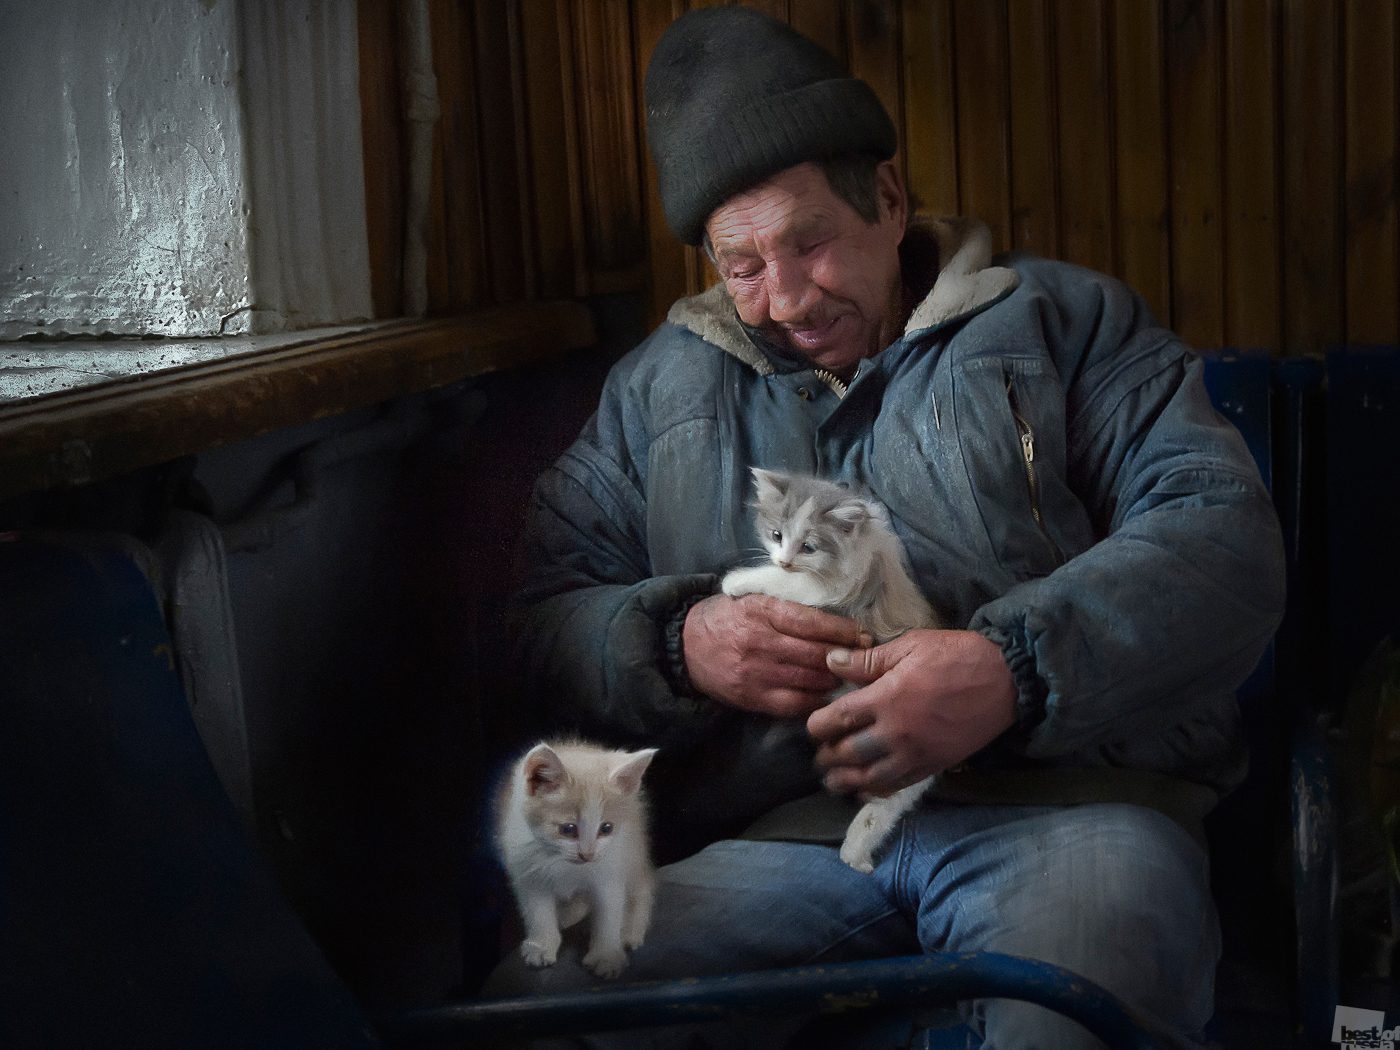 But can you call them domesticated if you have no home? // A homeless man with kittens; nothing human is unfamiliar